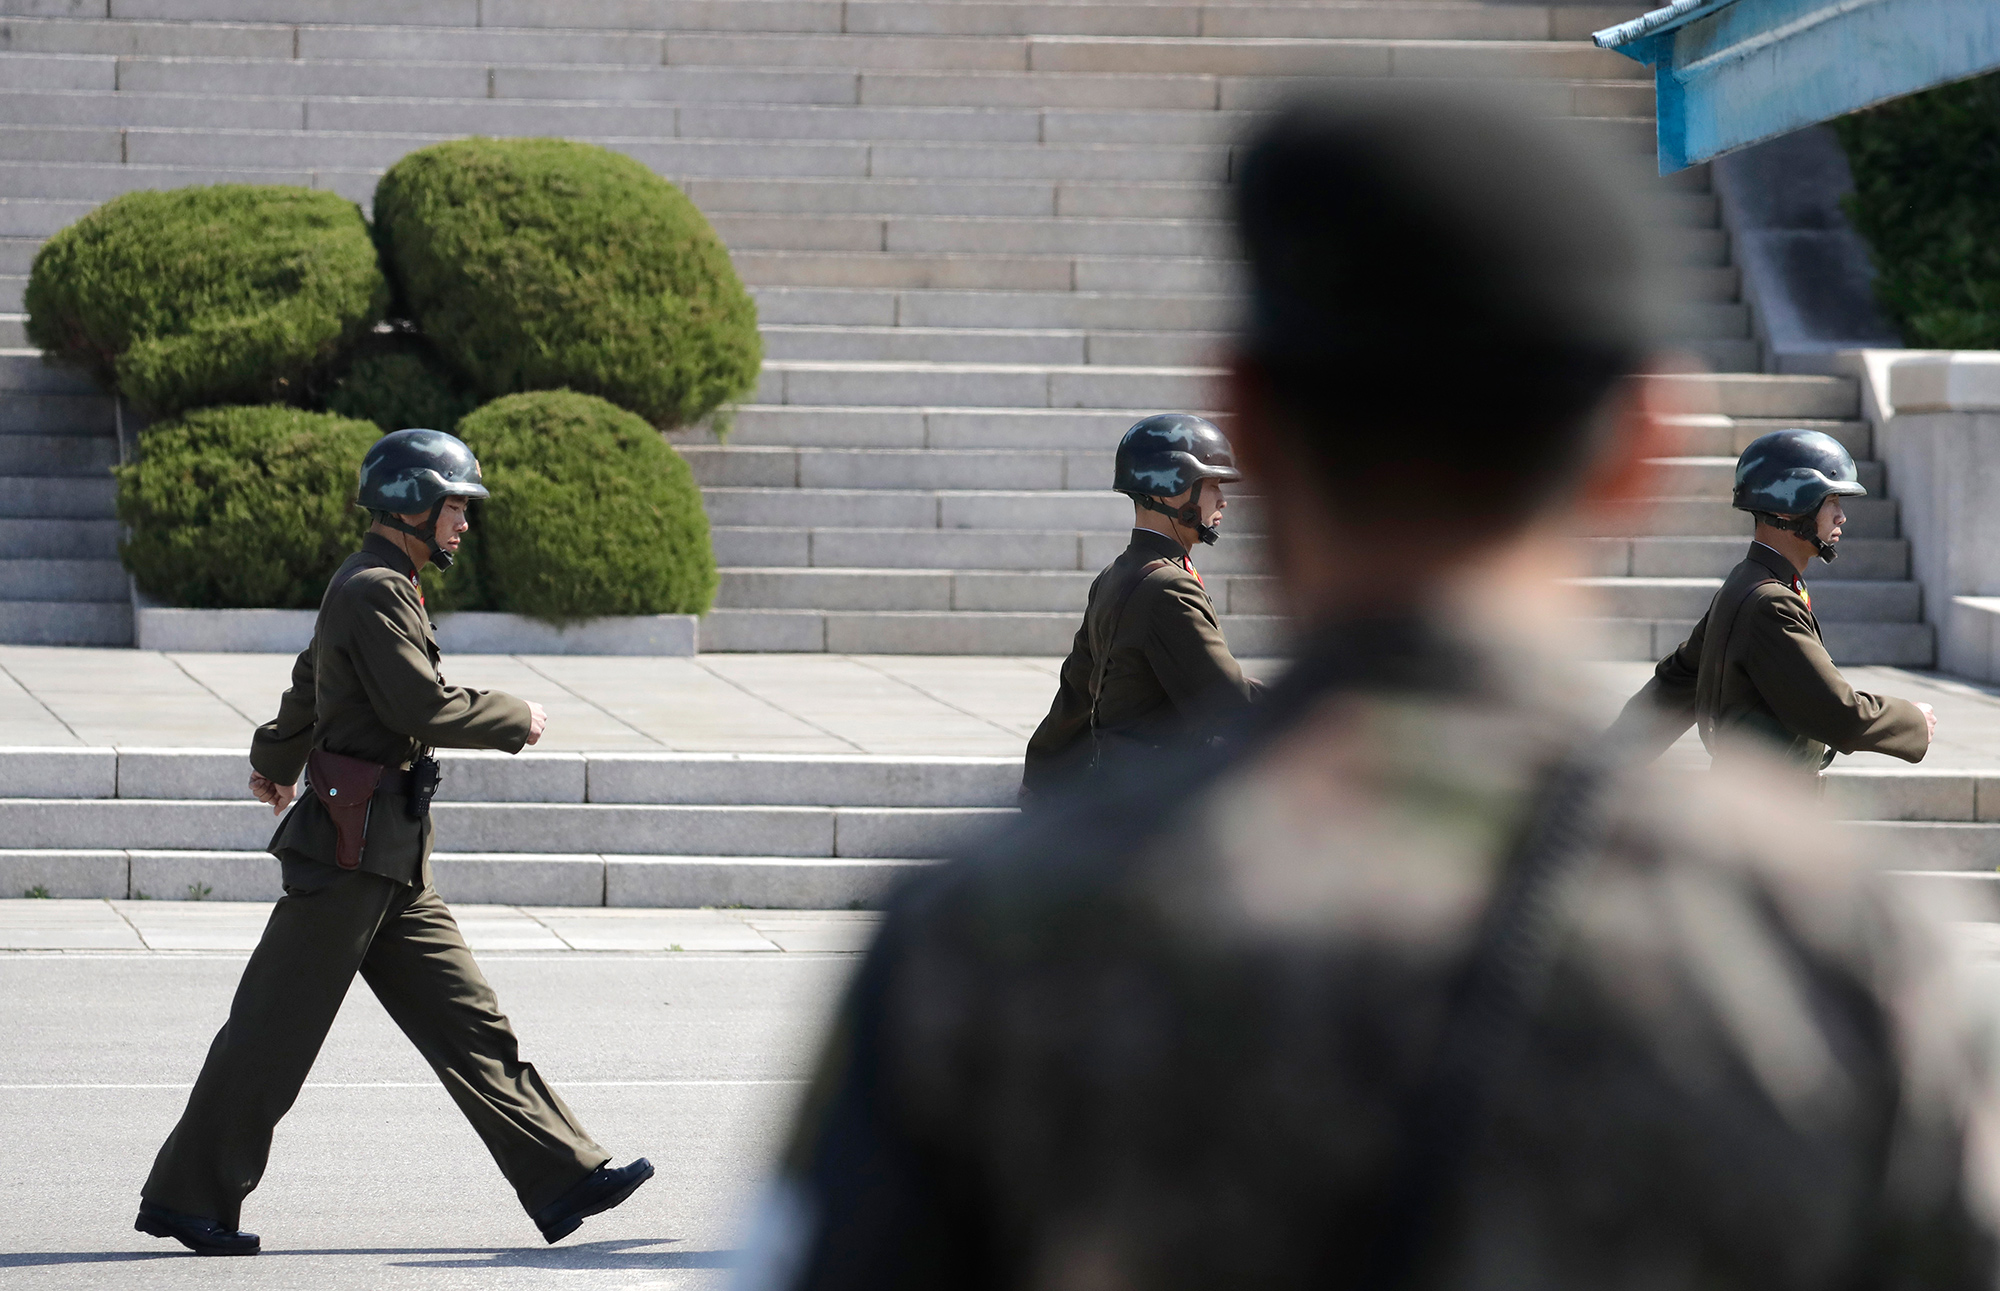 Soldiers march in Panmunjom in the Demilitarized Zone